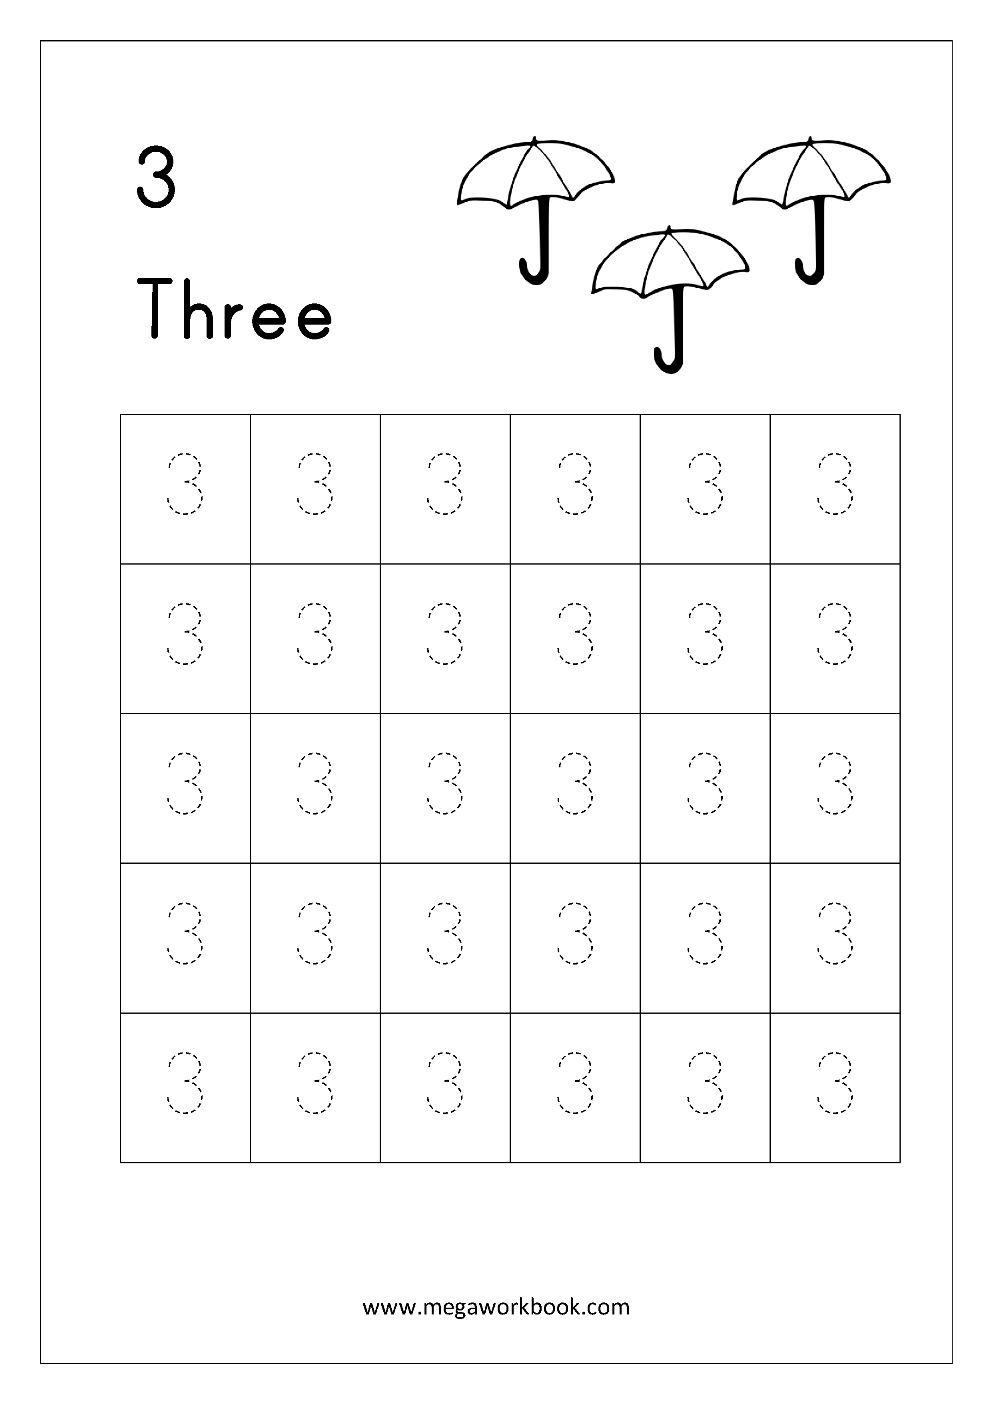 Free Printable Number Tracing And Writing (1-10) Worksheets - Number | Printable Number Tracing Worksheets For Kindergarten